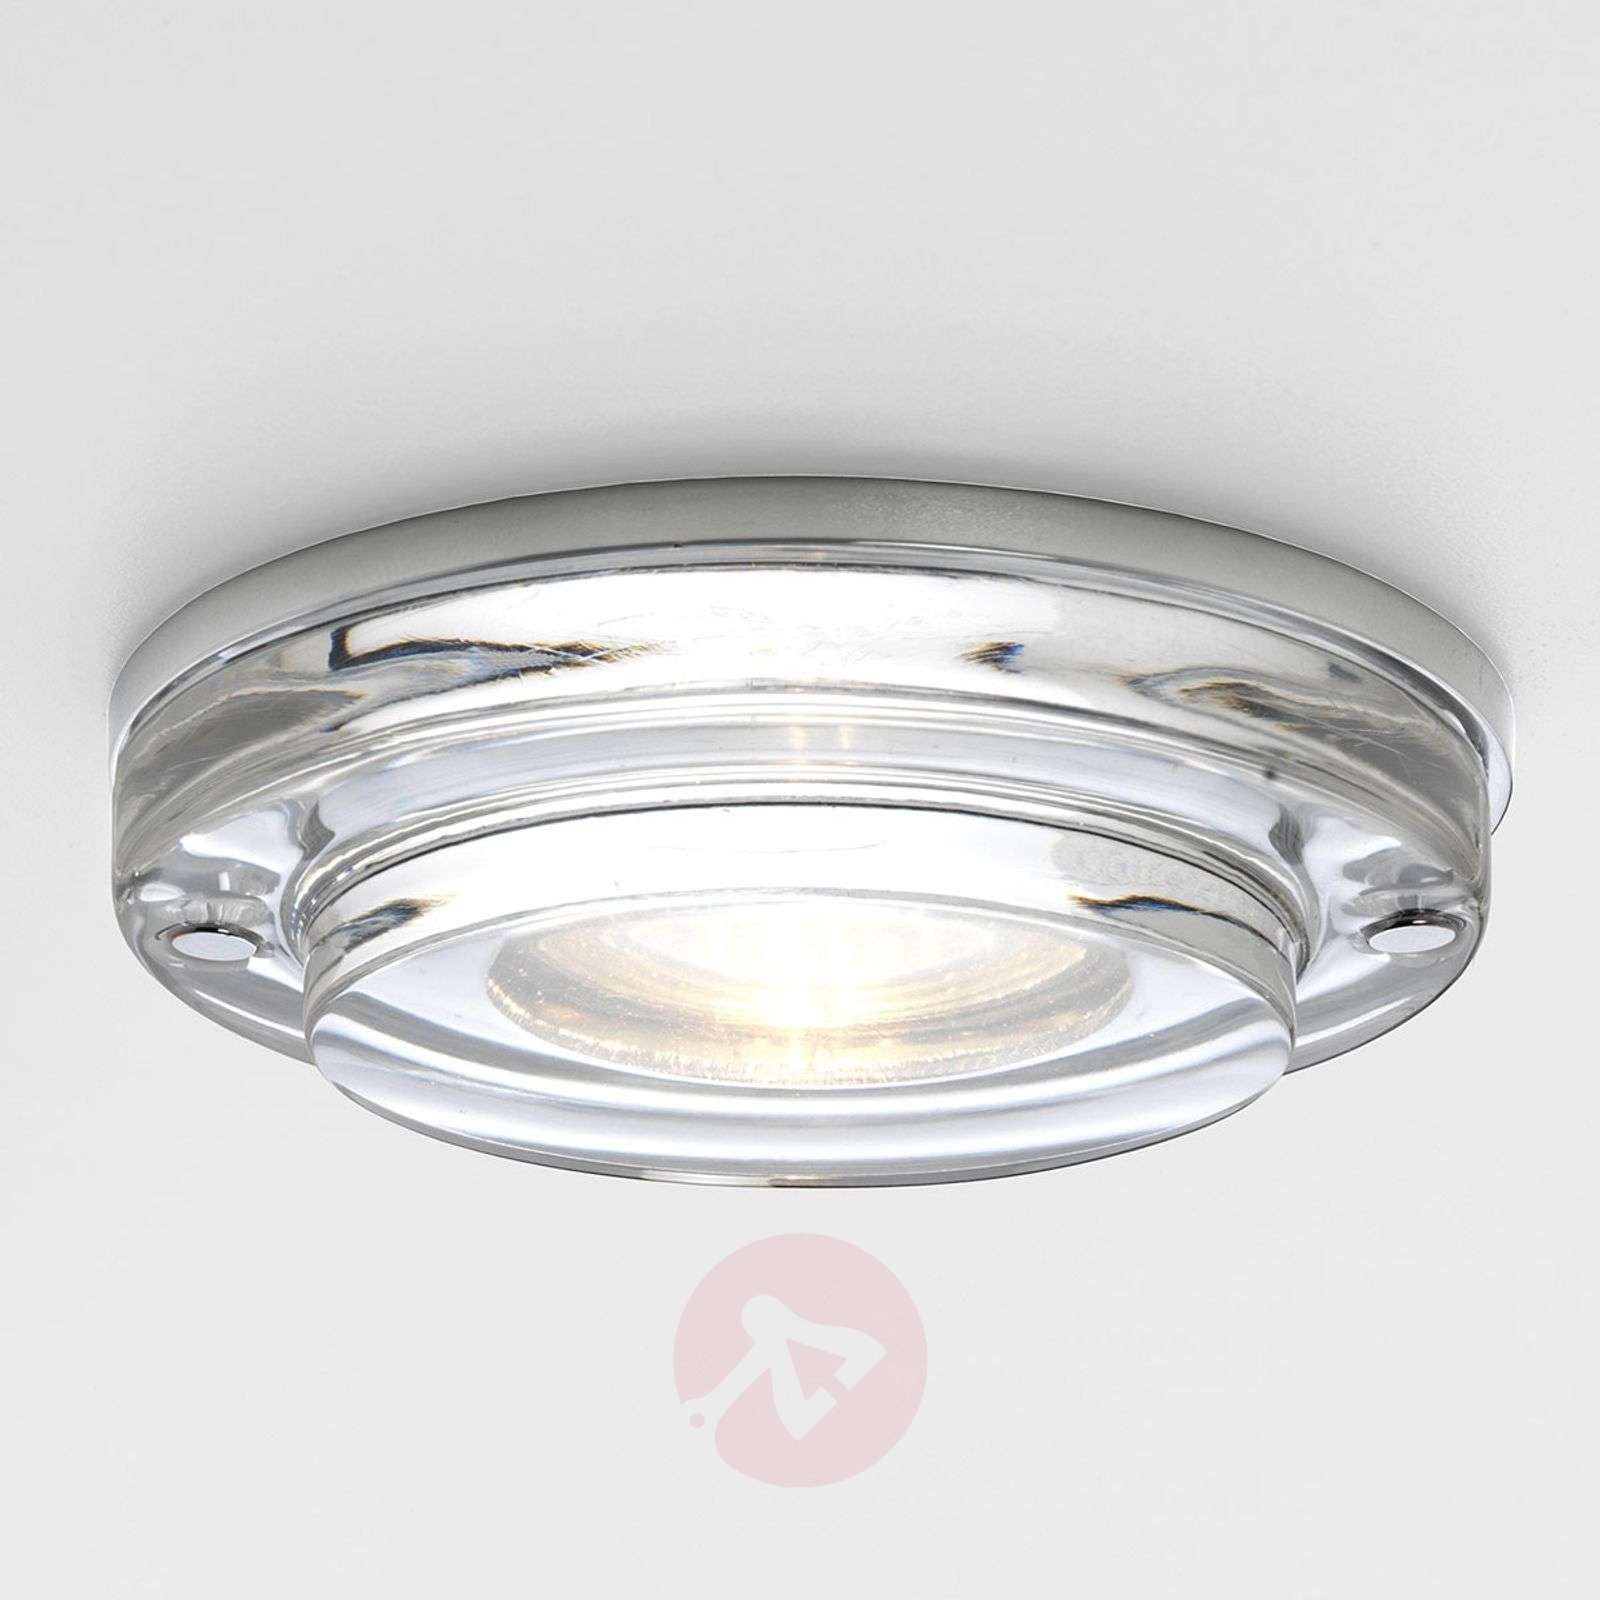 Mint Round Built-In Ceiling Light Elegant-1020116-03